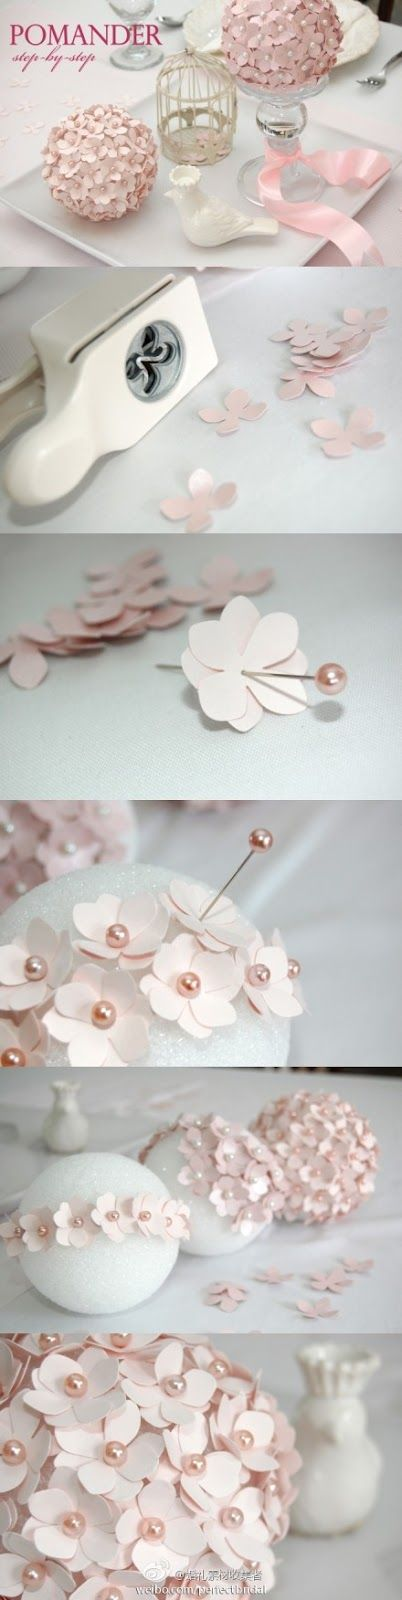 If you have patience and attention to detail and there is a little bit of Kirsty Allsopp in you then this is just such a cute idea for your wedding decorations!